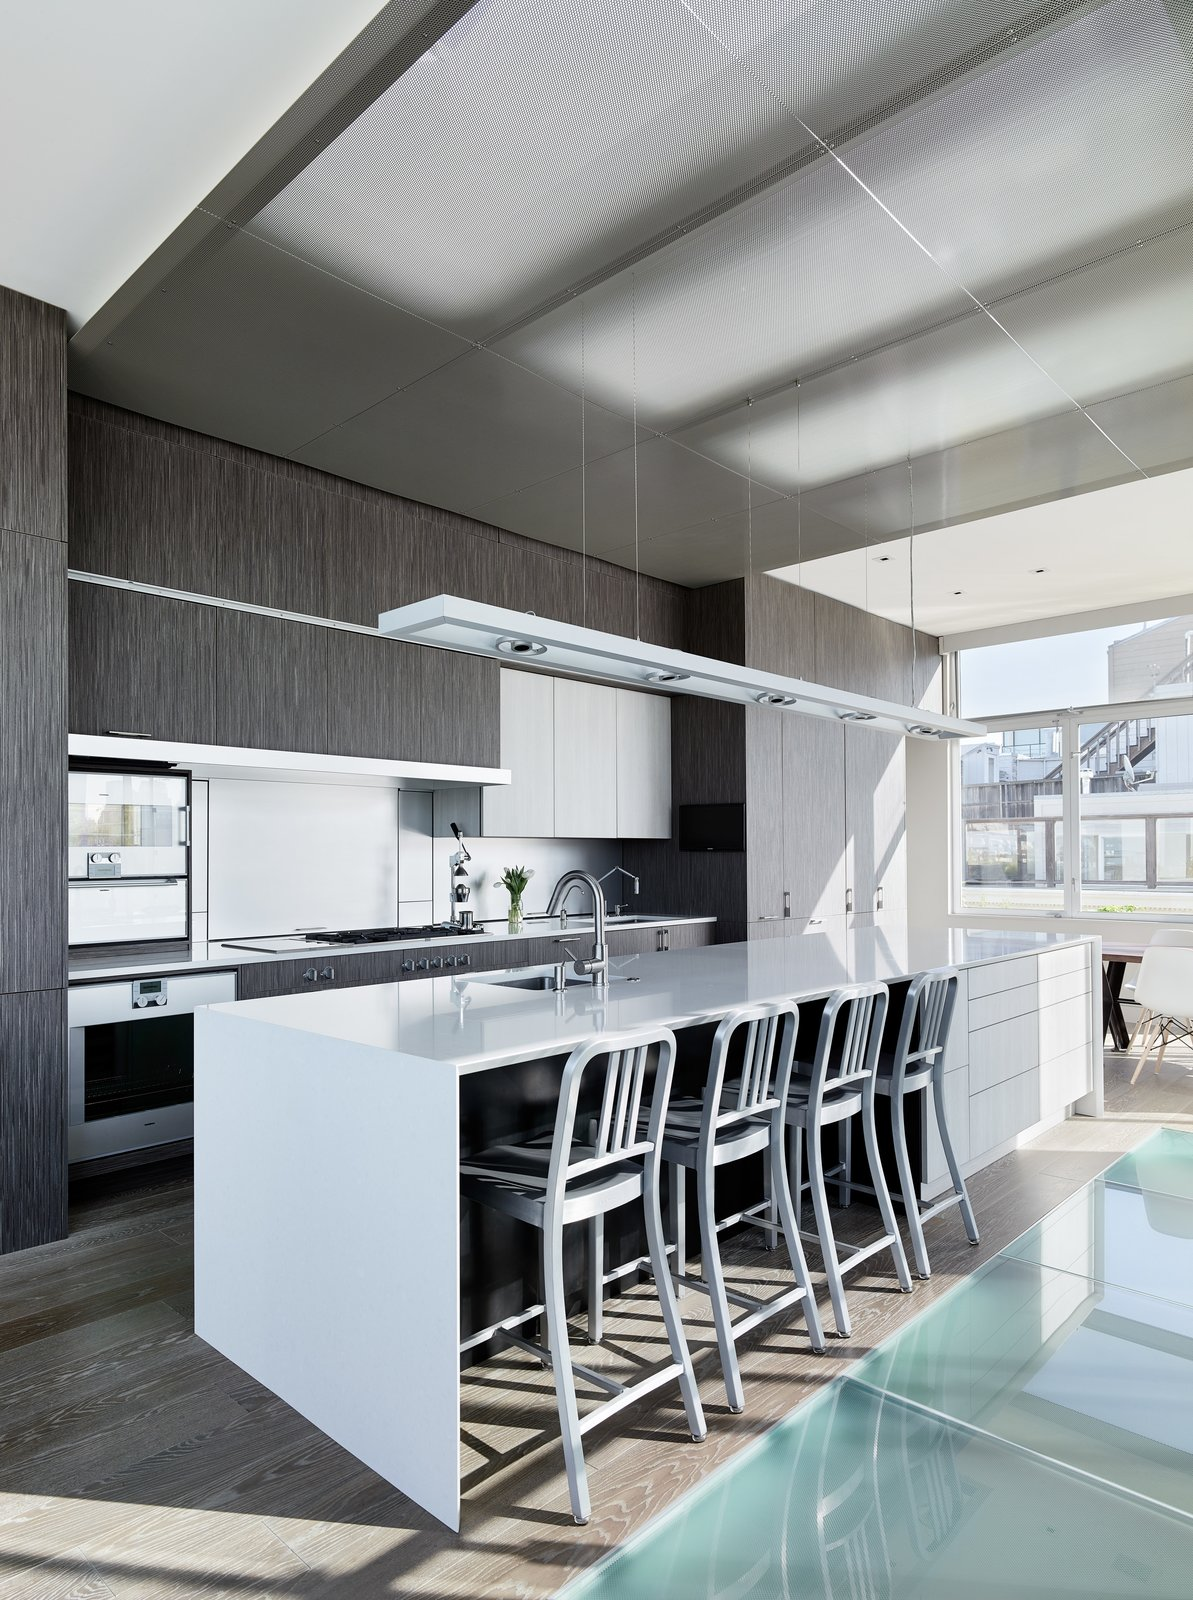 Kitchen by Jamel from Telegraph Hill Townhouse